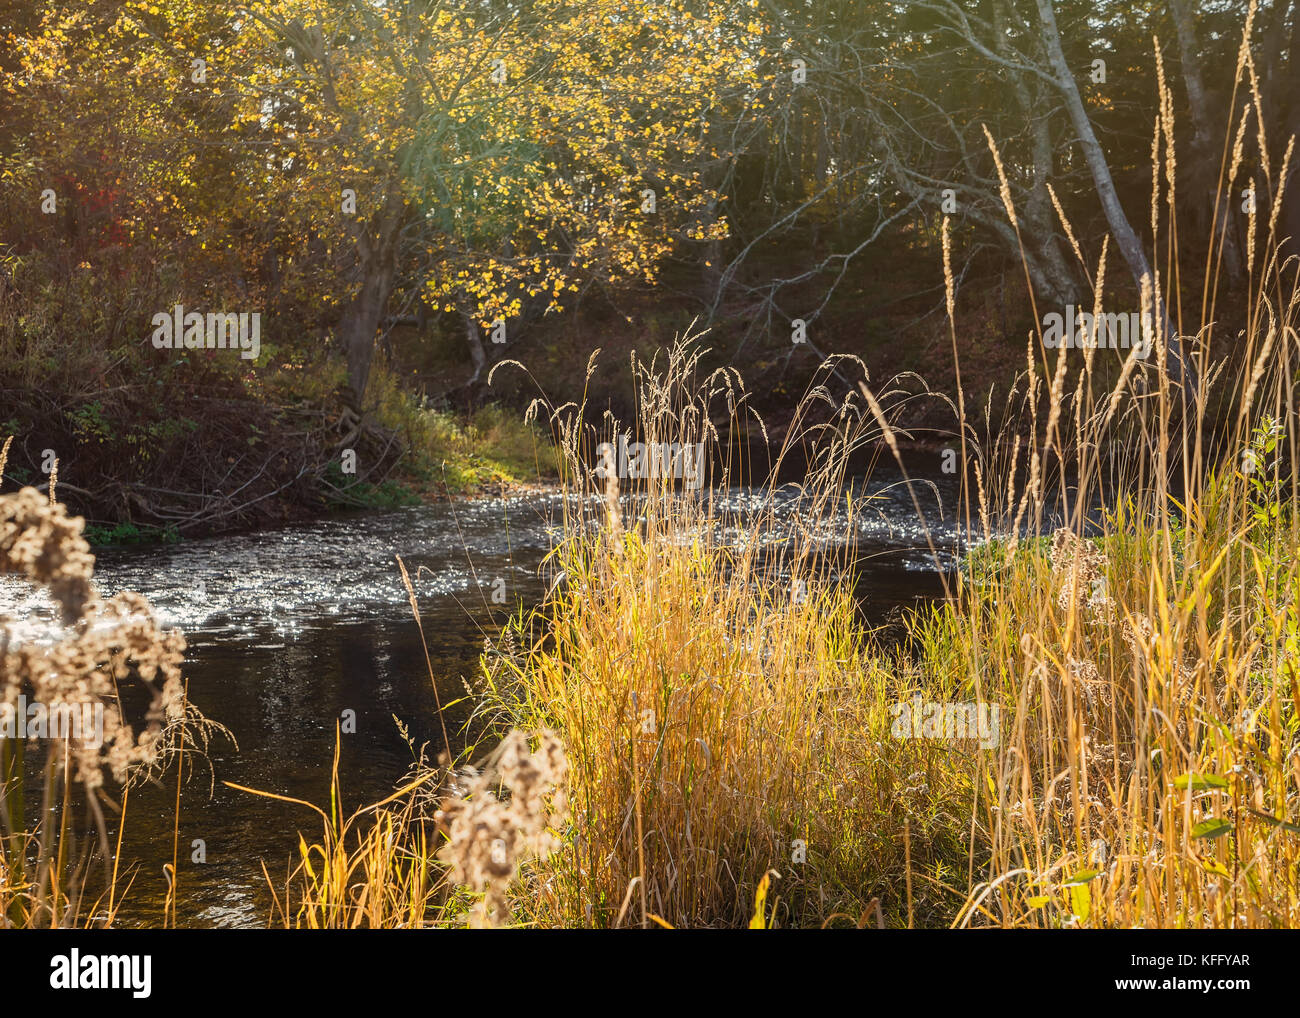 Sun shining on vegetation along the shore of a small river in autumn. - Stock Image